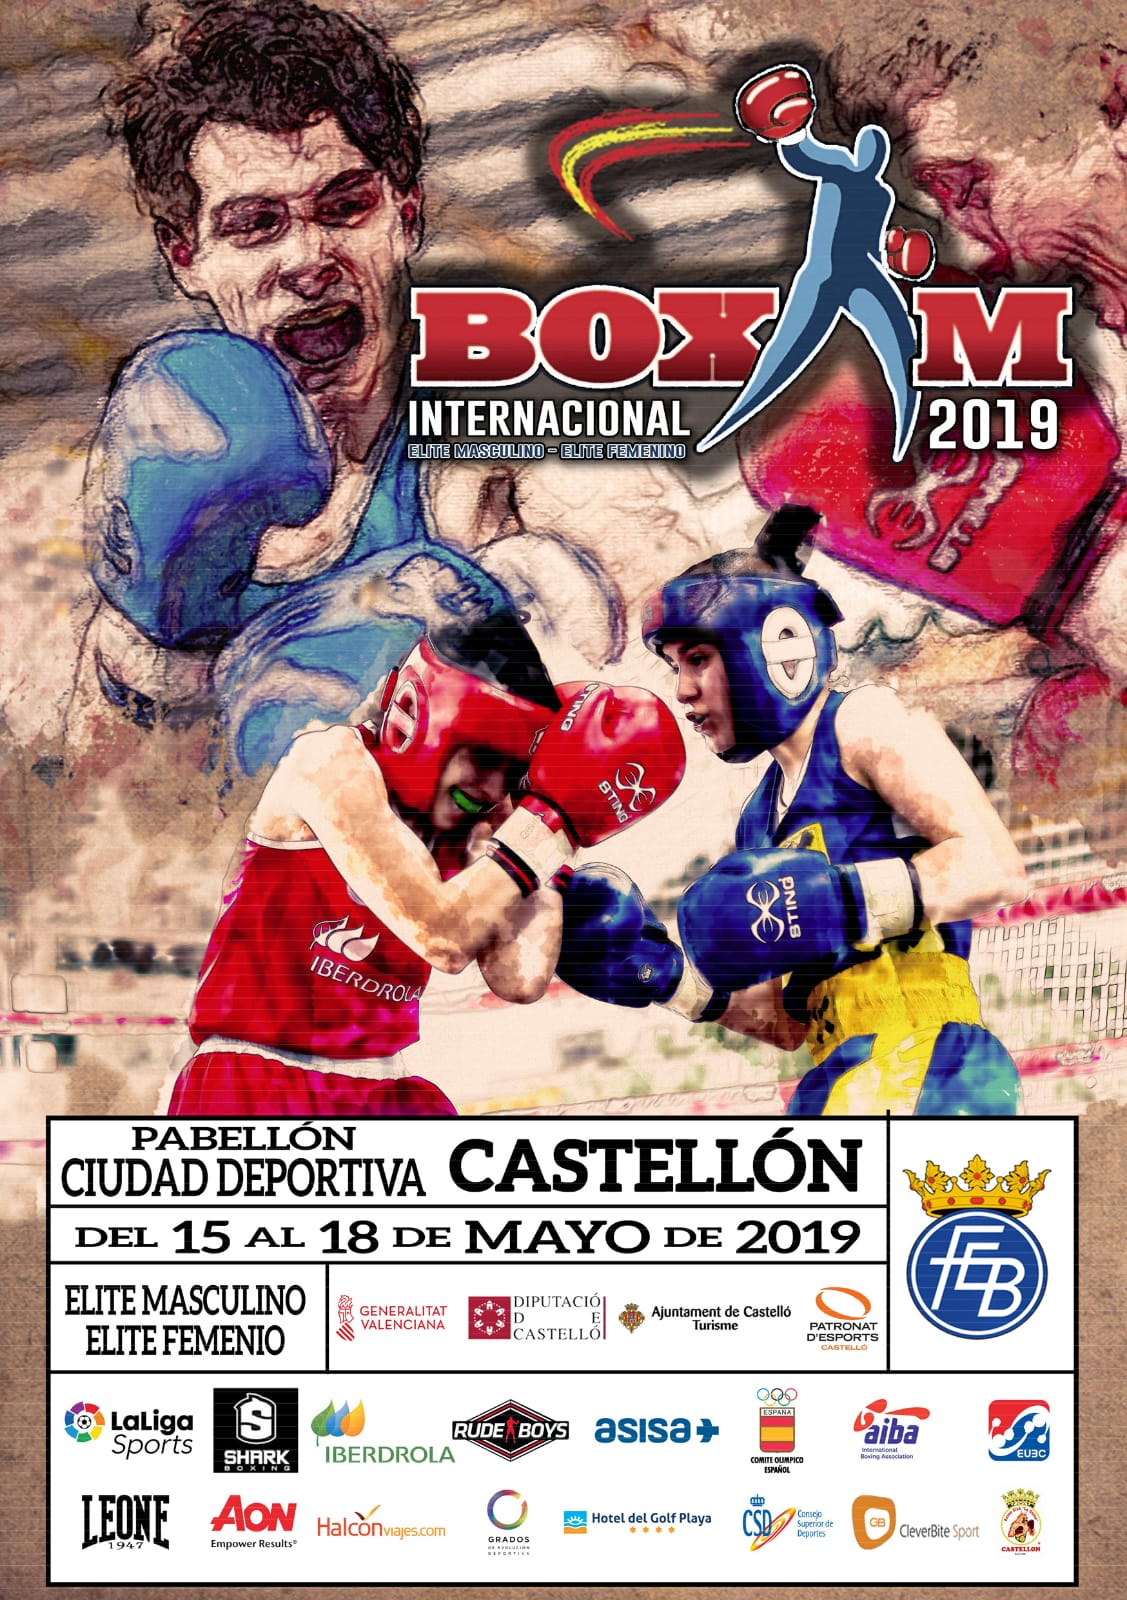 Photo of FINALES BOXAM INTERNACIONAL